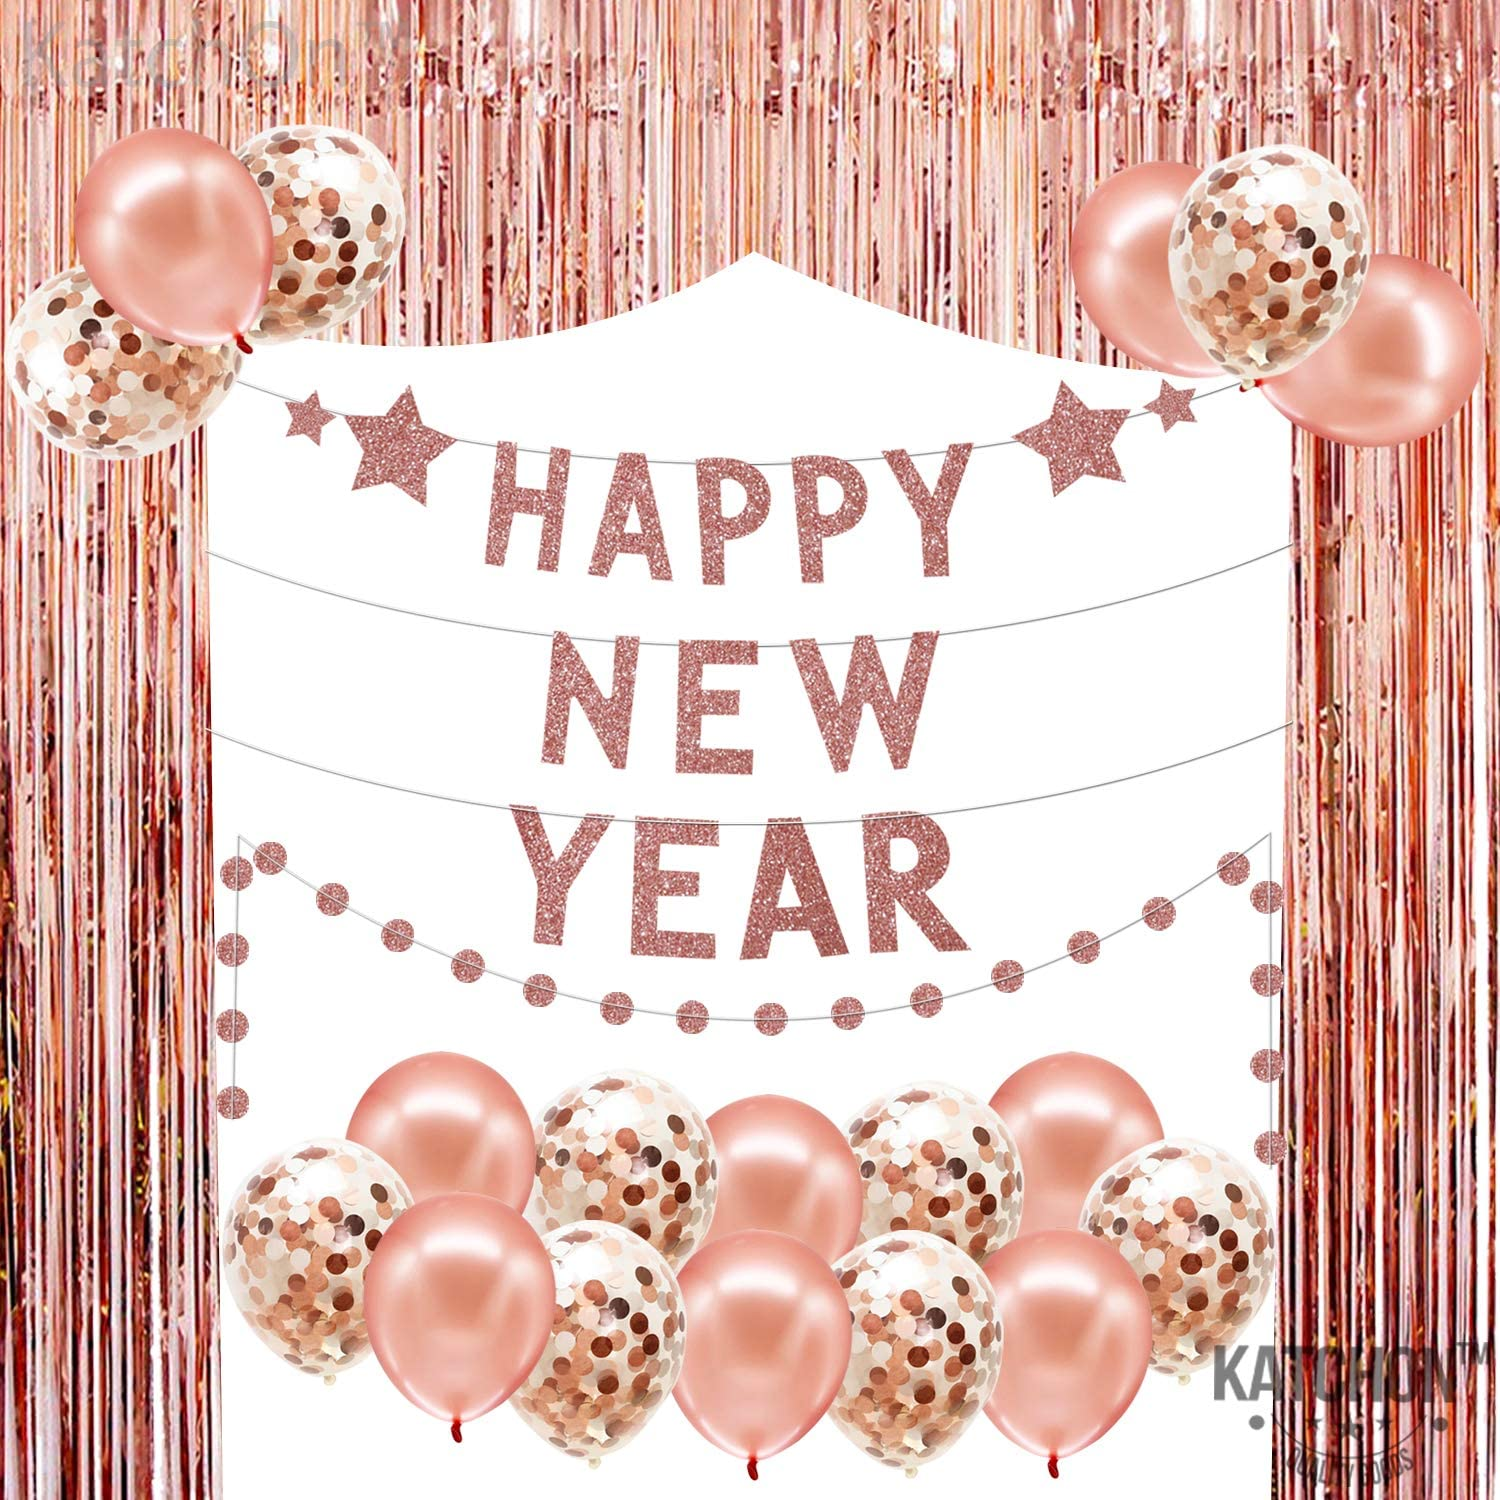 Rose Gold New Years Eve Backdrop Banner - Rose Gold Fringe Foil Tinsel Backdrop| Confetti Balloons | Happy New Year Banner Garland Sign |New Years Eve Party Supplies 2021 | Happy New Year Decorations